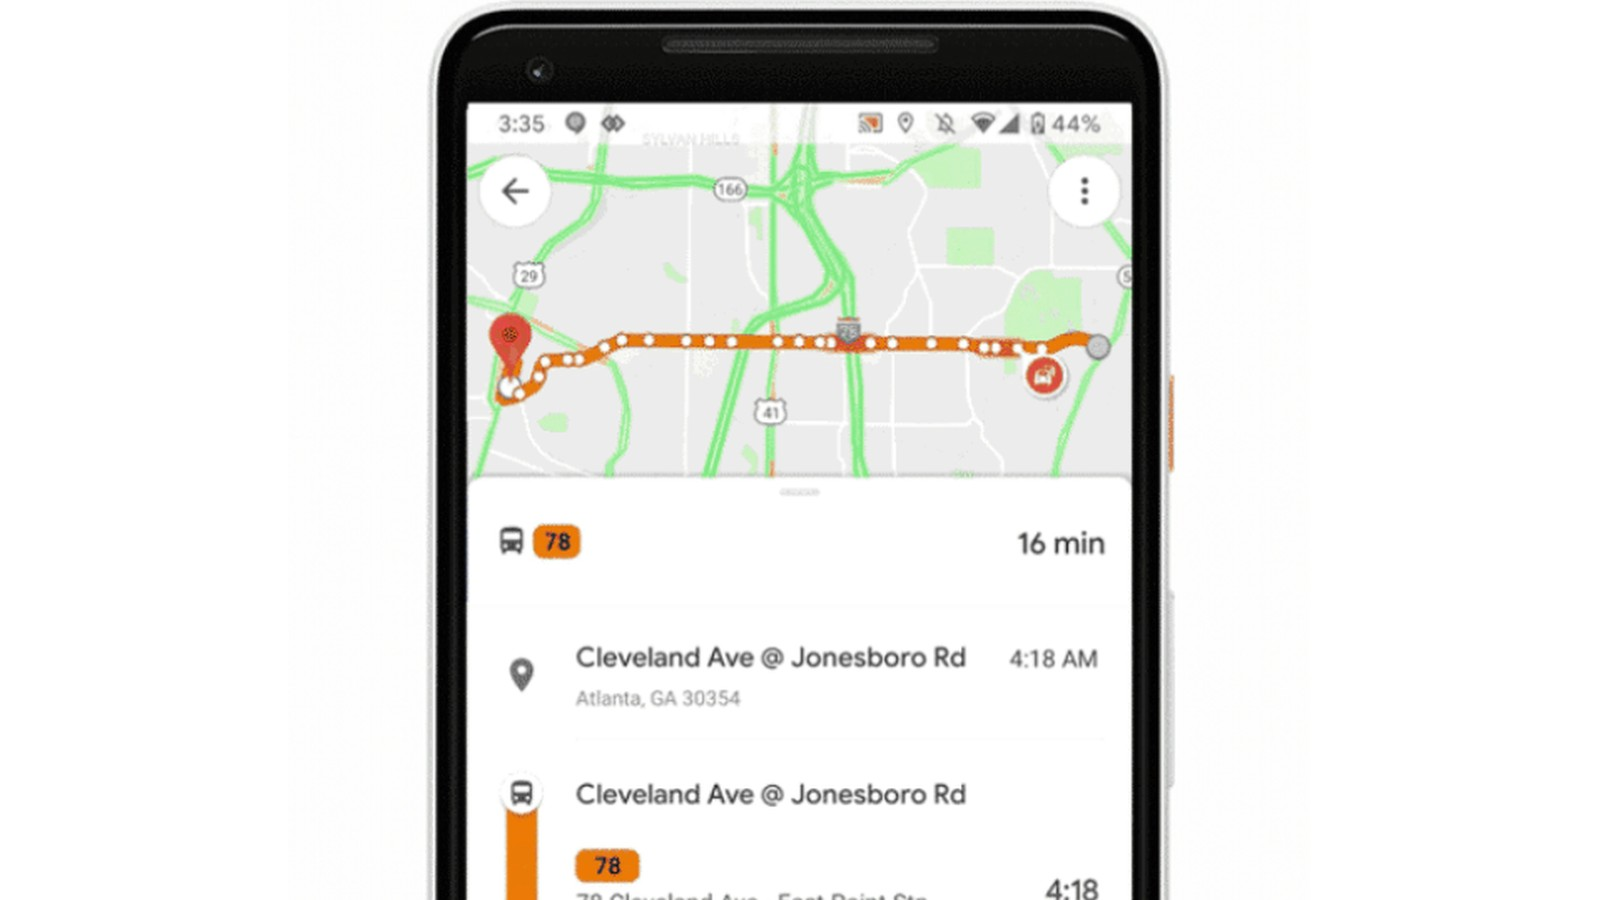 Google Maps now warns commuters of crowded trains and bus delays